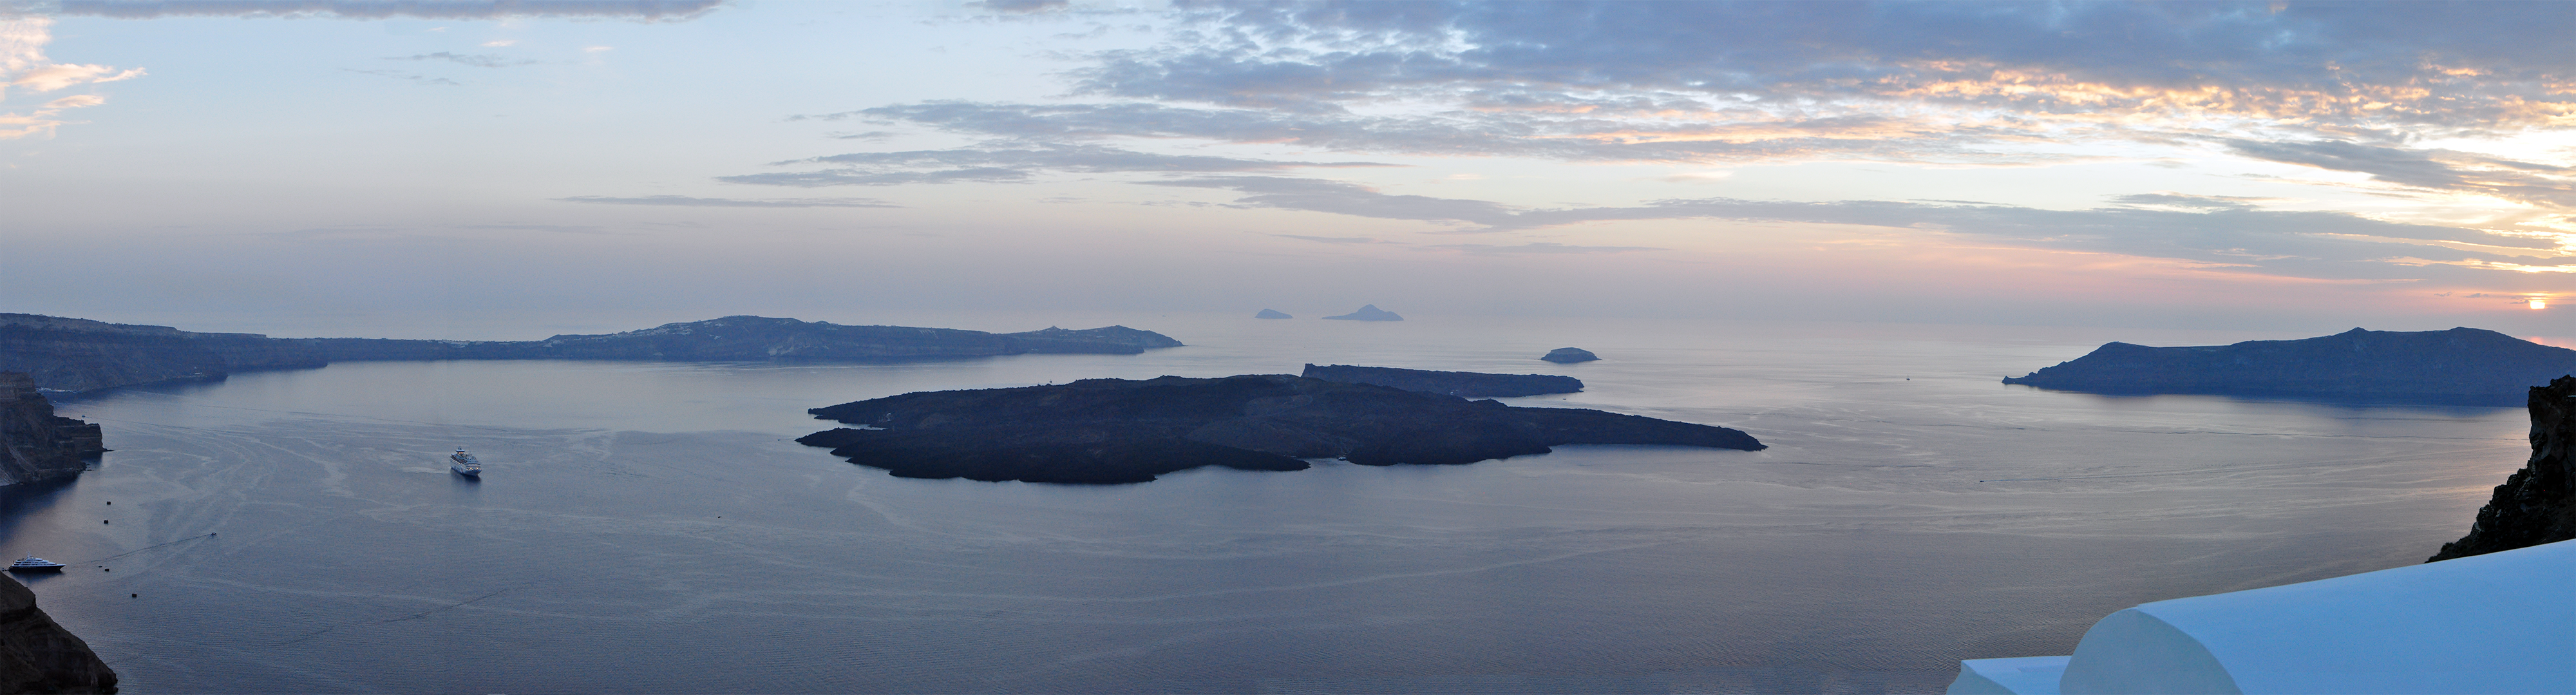 Day 20: Greece (Santorini)